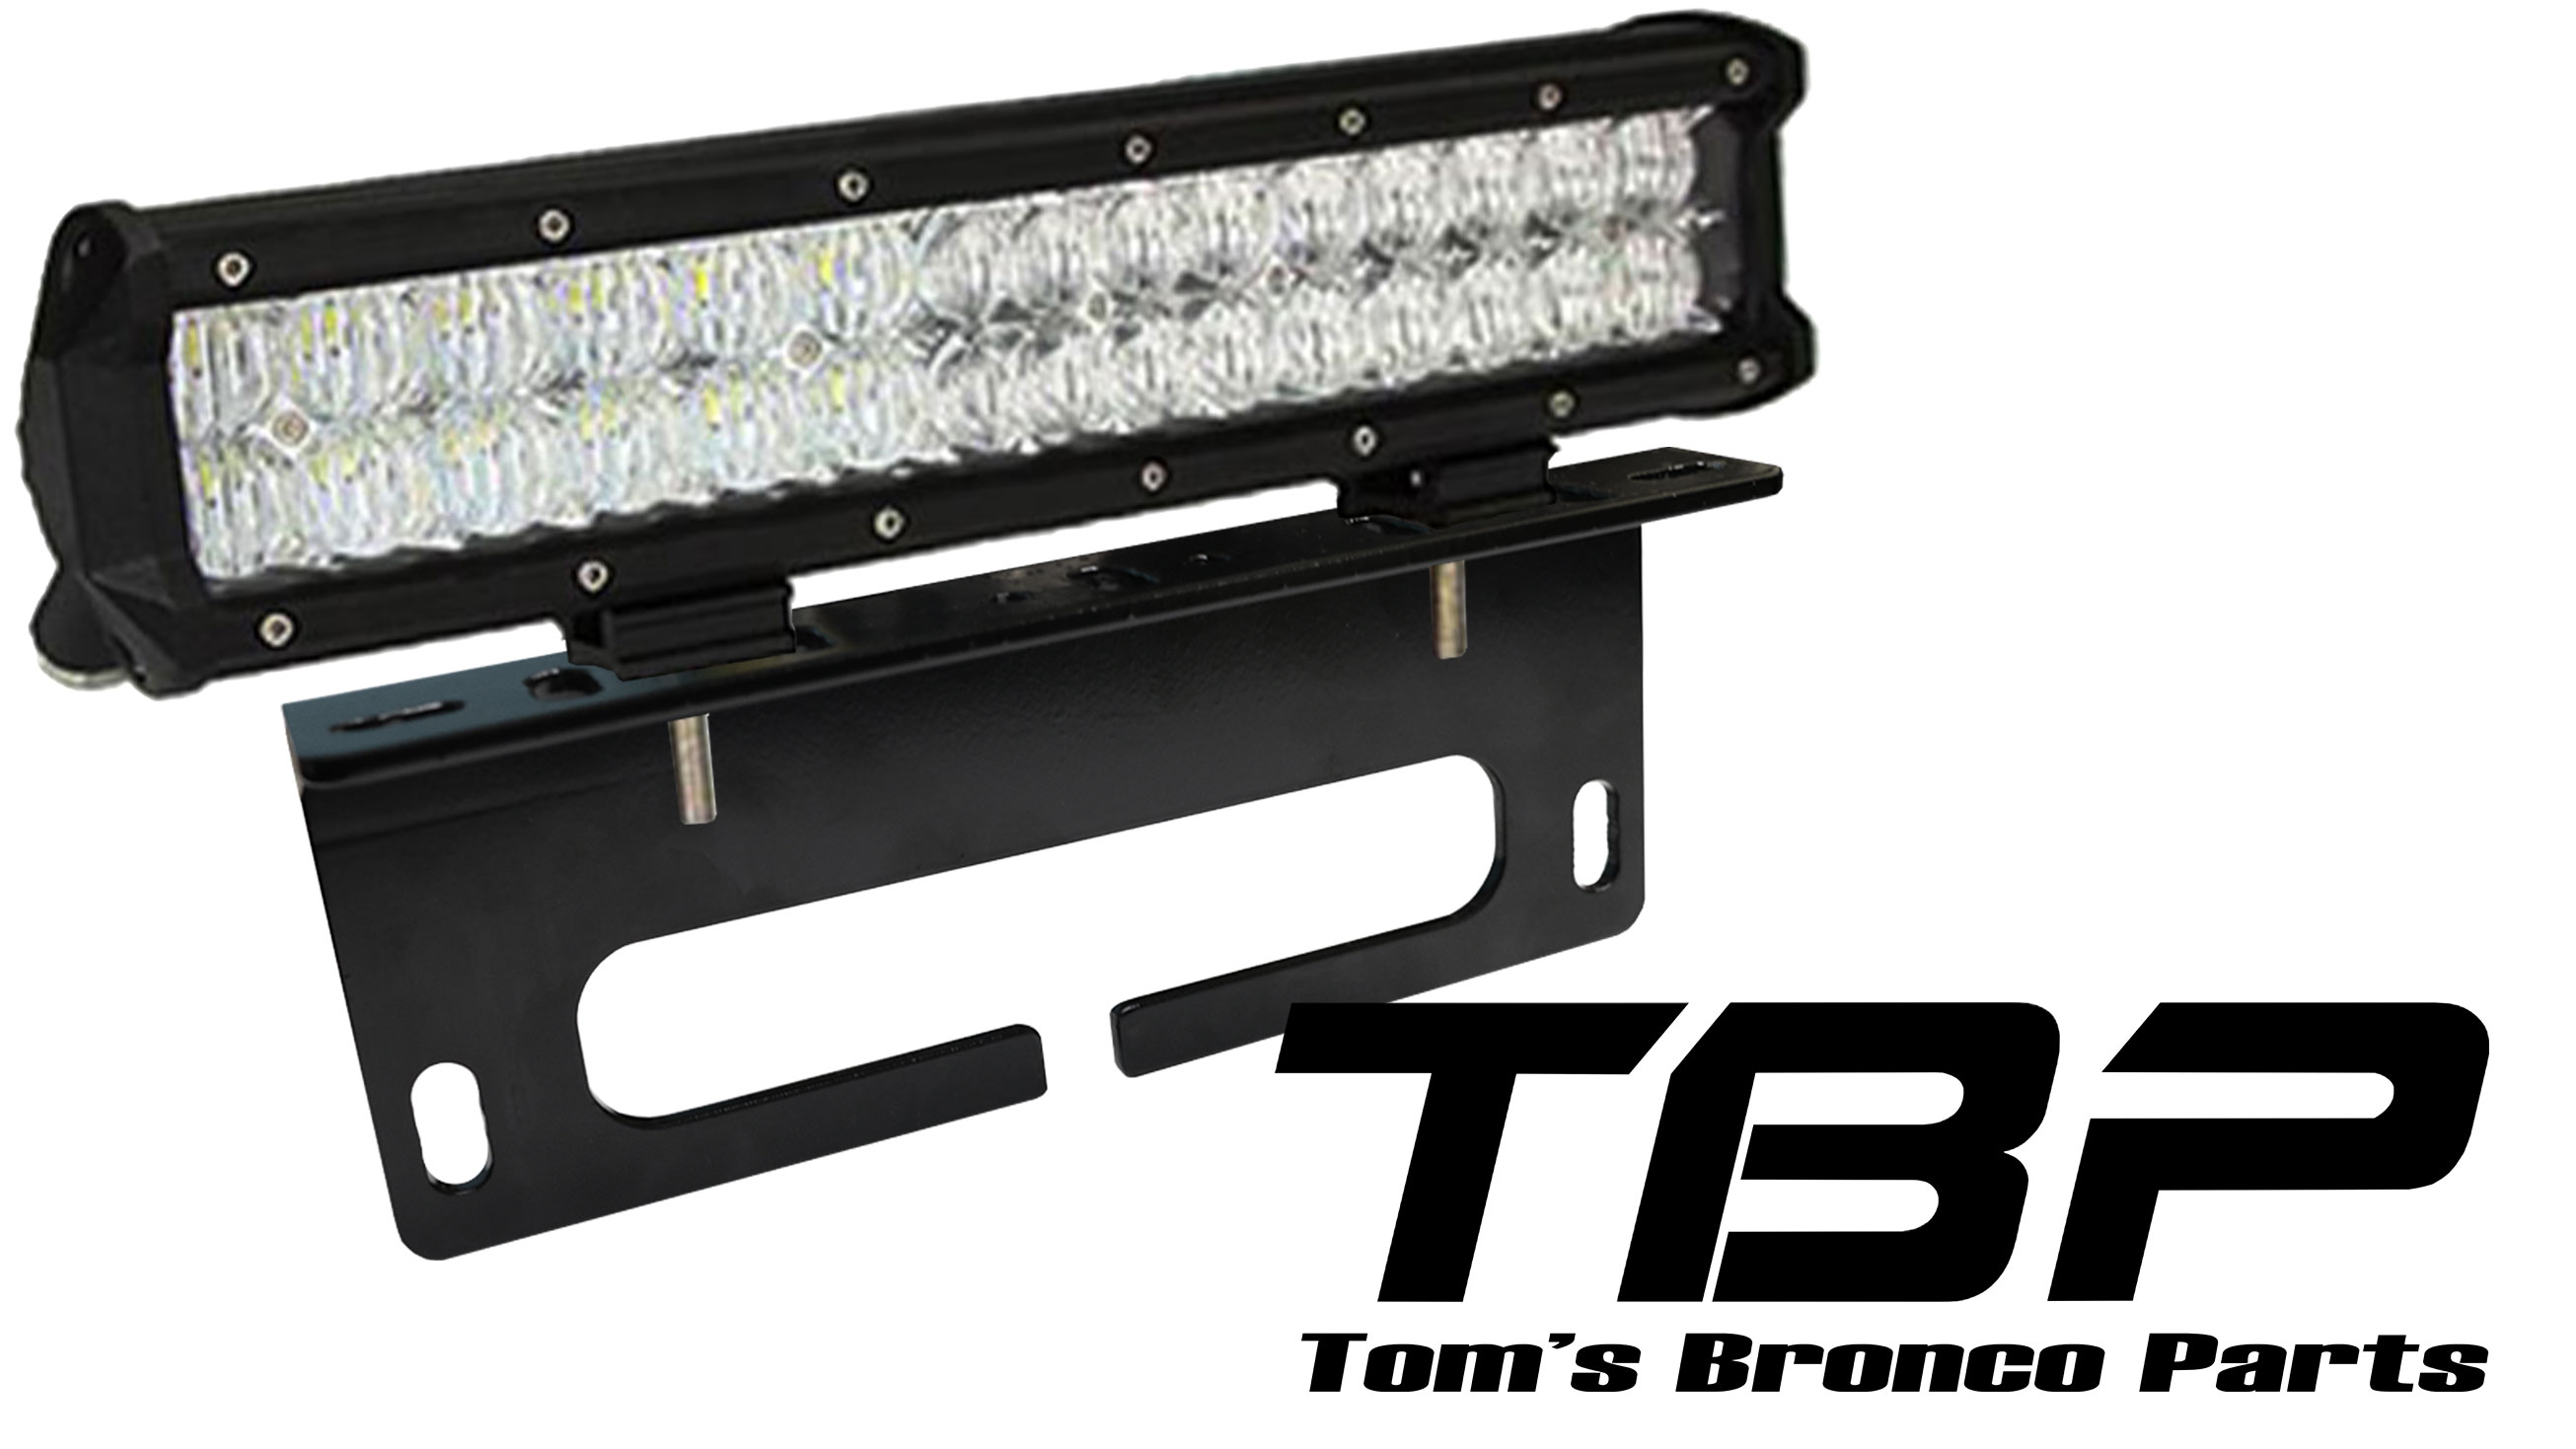 66 77 Ford Bronco Parts Accessories Toms 74 F100 Wiring Diagram 15 Dual Row Led Light Bar W Winch Fairlead Mount